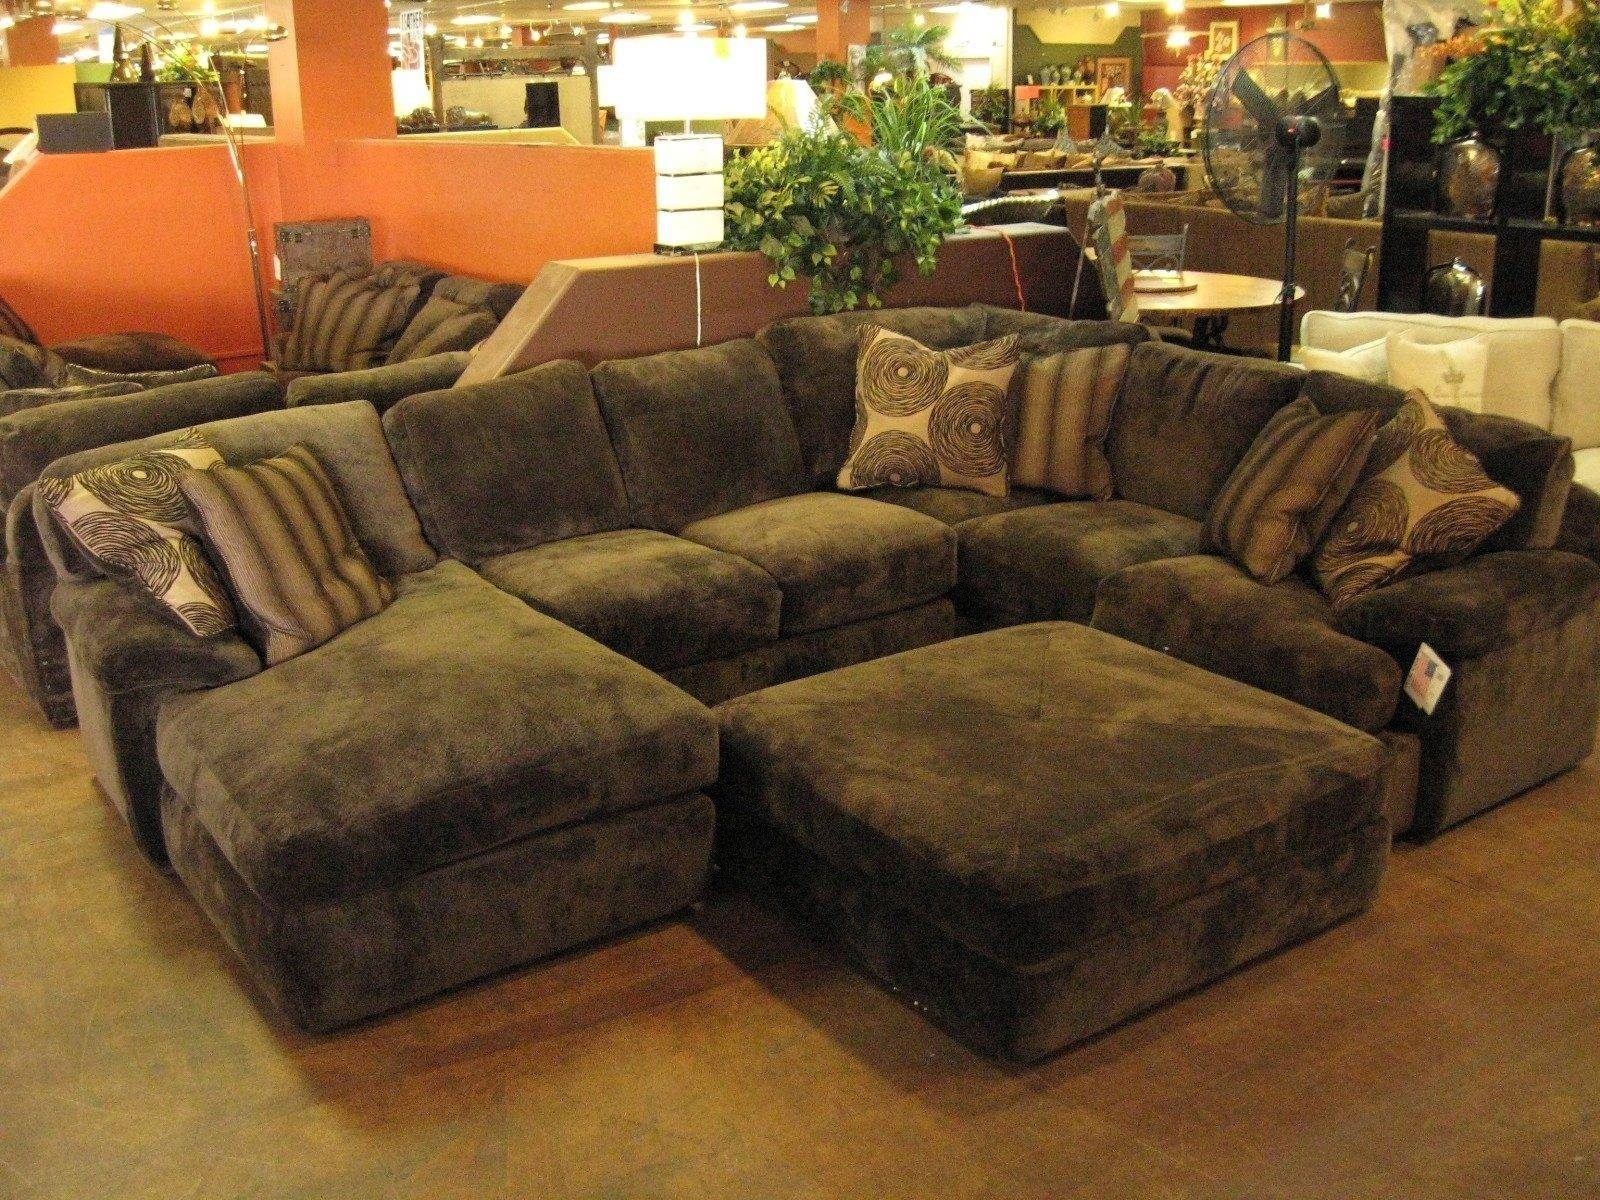 Sofas: Oversized Sofas | Microfiber Sectional Sofa | Oversized intended for Oversized Sectional Sofa (Image 27 of 30)